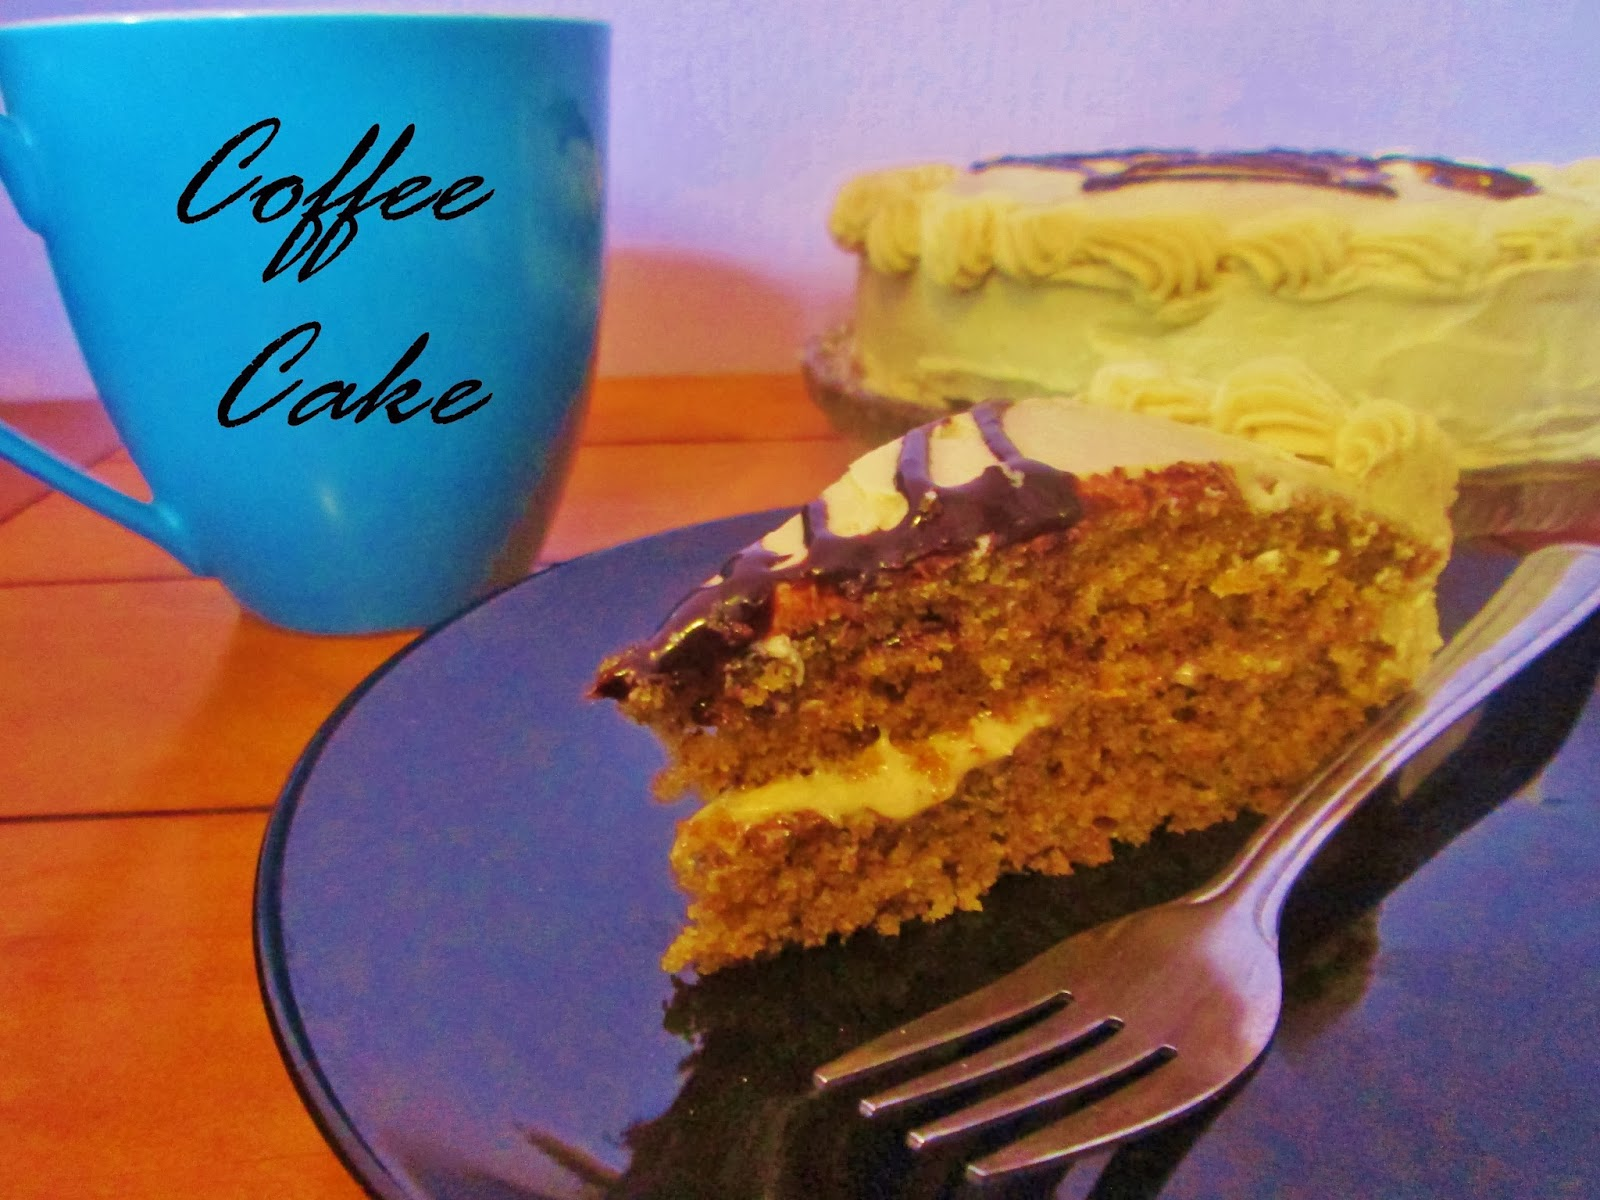 http://themessykitchenuk.blogspot.co.uk/2013/10/coffee-cake.html